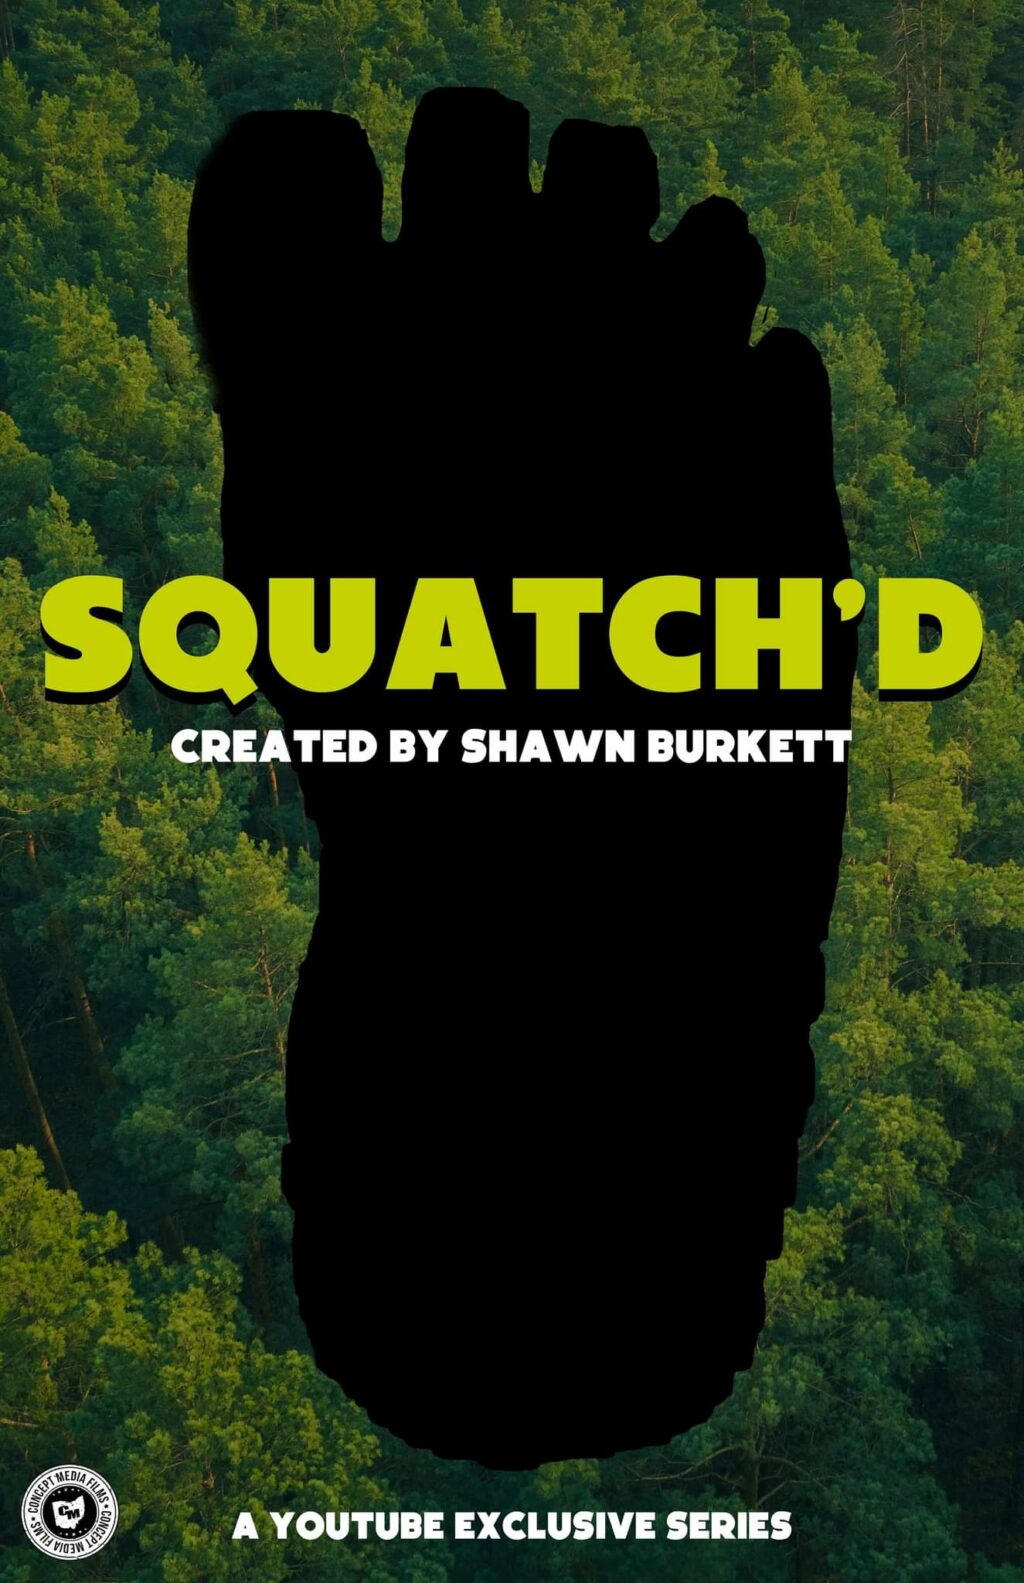 SQUATCHPOSTER 1024x1583 - Everything You Know About Bigfoot Has Been SQUATCH'D